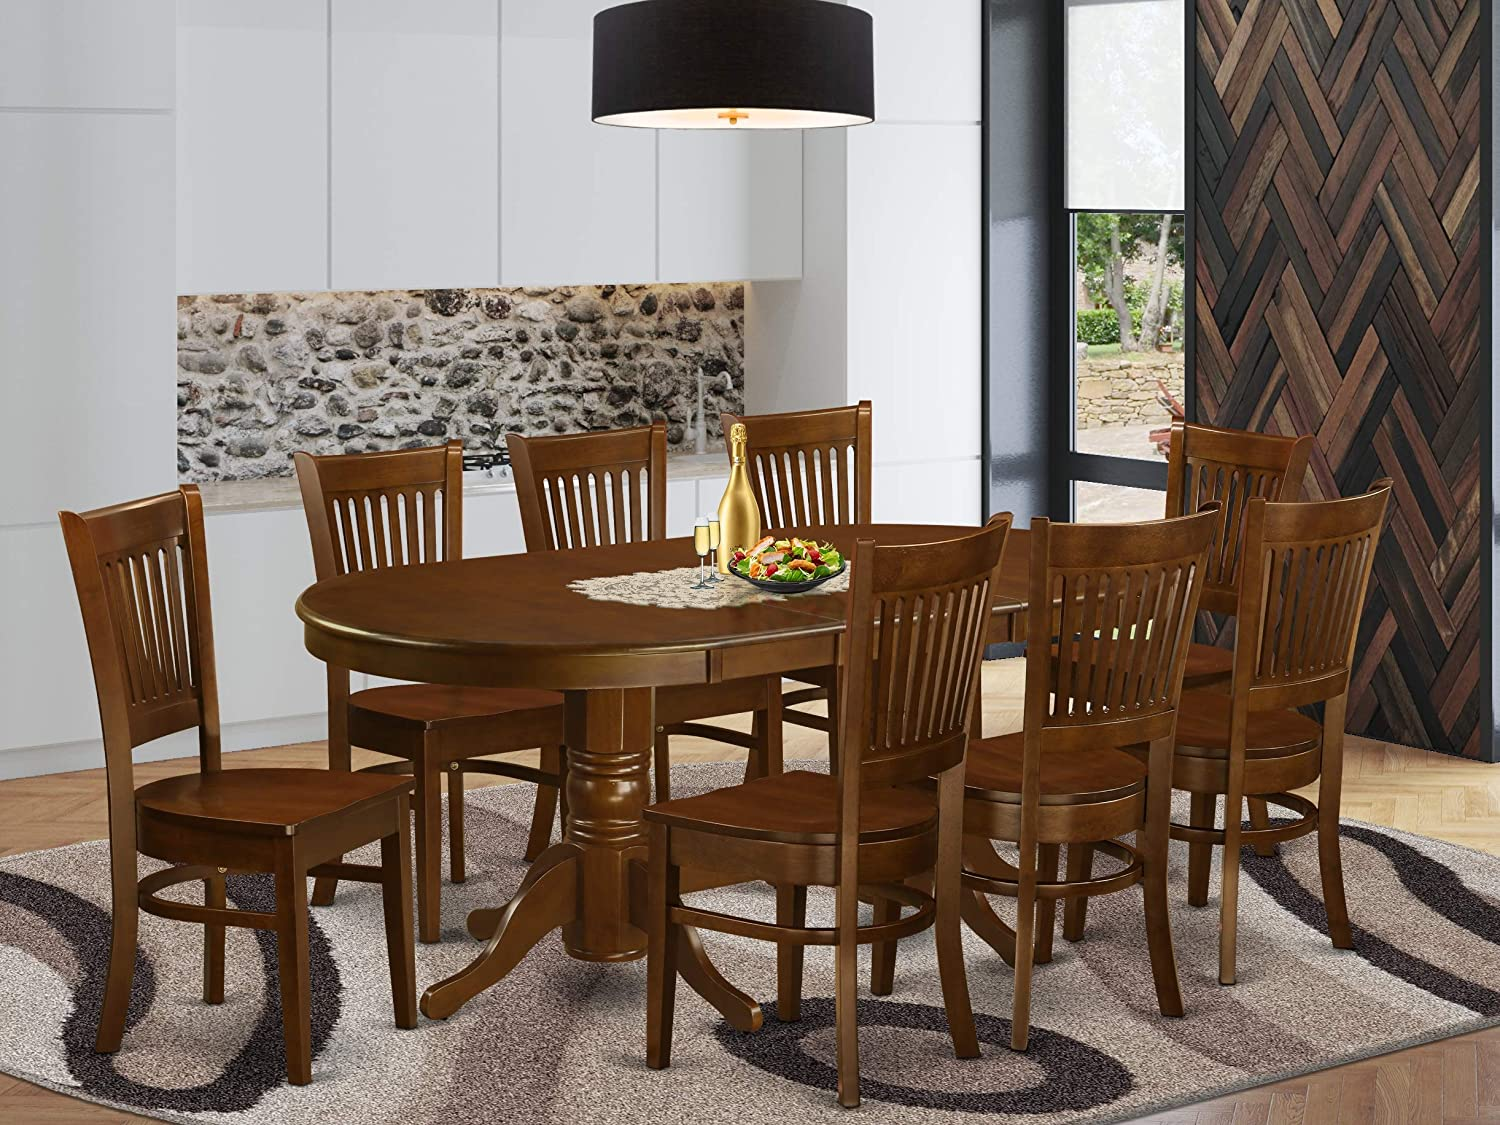 9 Pc Dining Room Set For 8 Table, Dining Room Set For 8